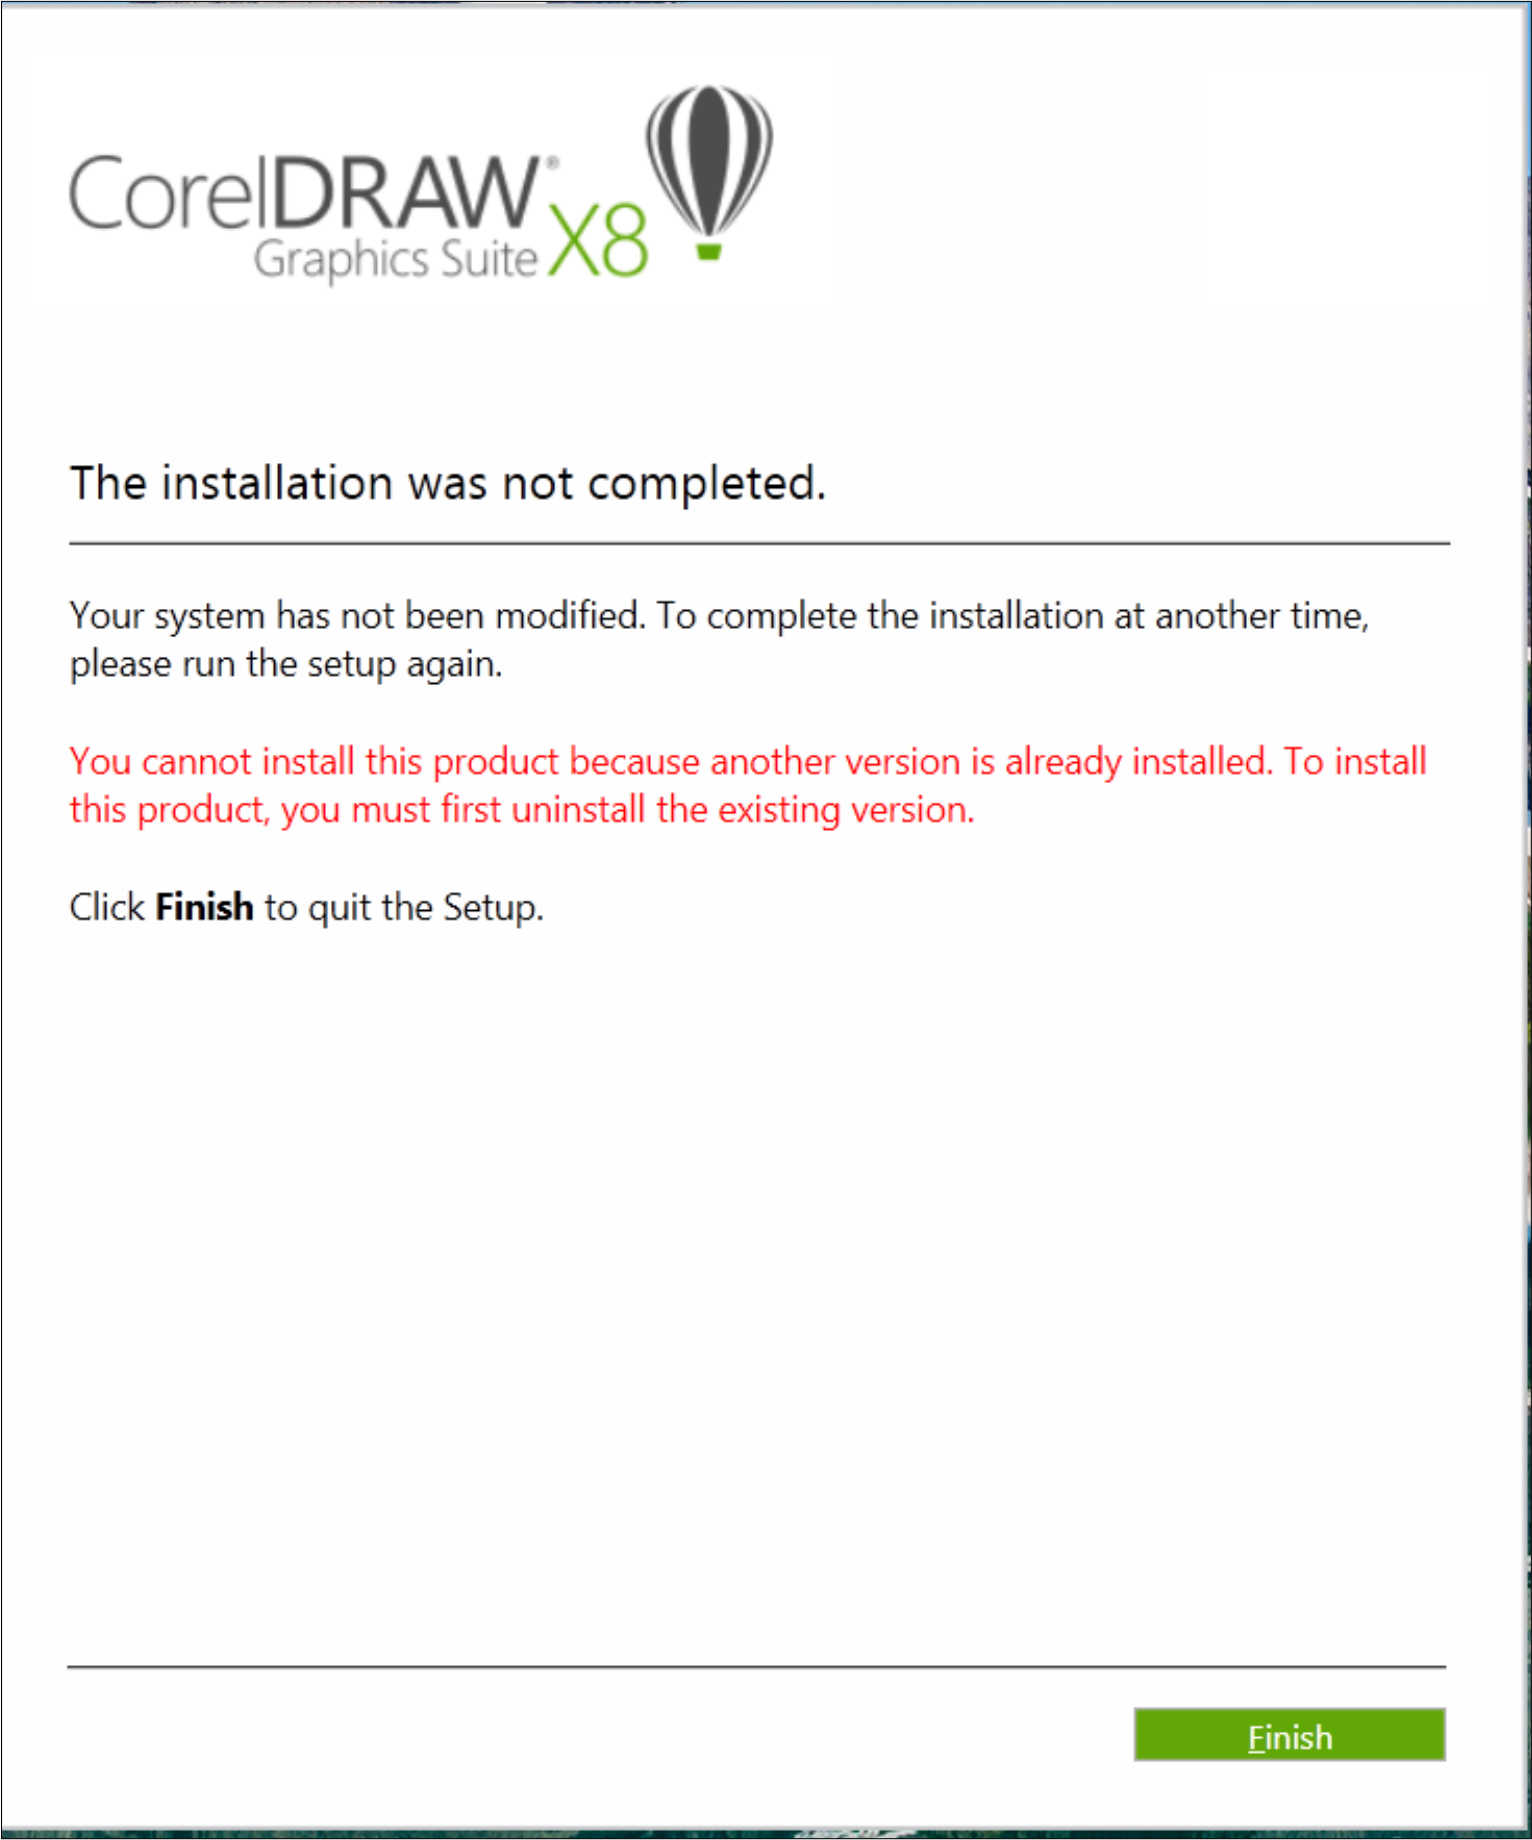 Corel draw version - Okay After Reinstalling Windows 7 Pro And Visual Studio Suite And A Slew Of Other Junk I Got This Message